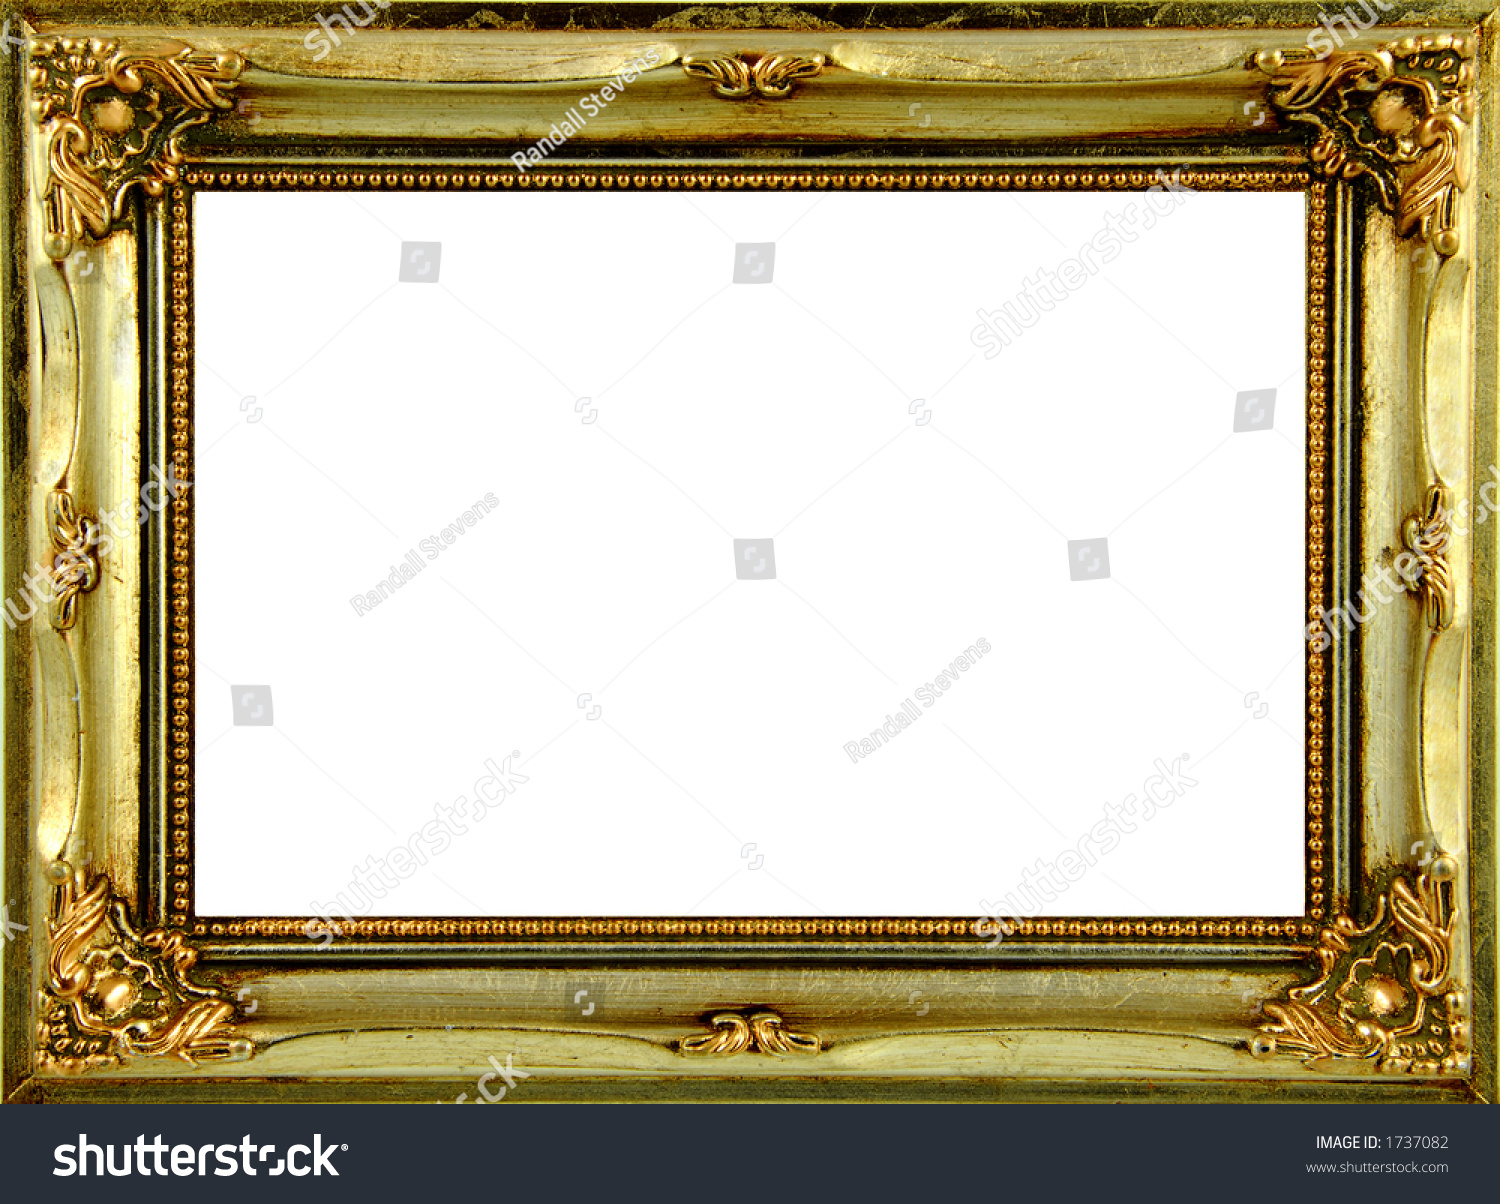 Gold Ornate Frame Stock Photo (Royalty Free) 1737082 - Shutterstock